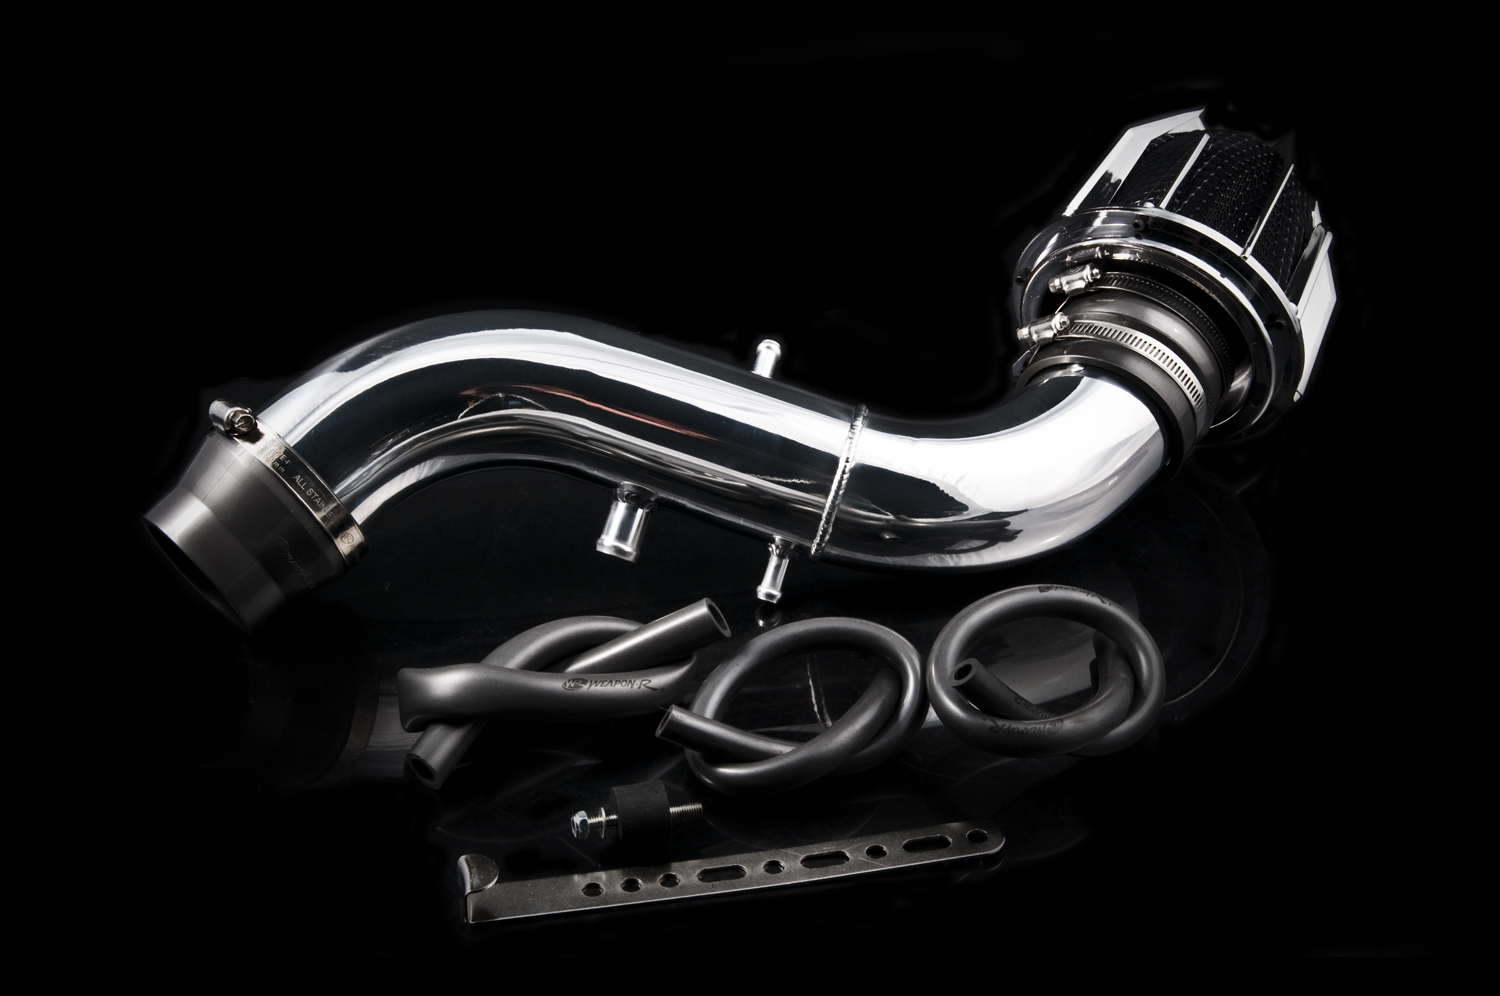 Toyota Solara / Camry 4cyl 1998-2001 Weapon-R Dragon Air Intake